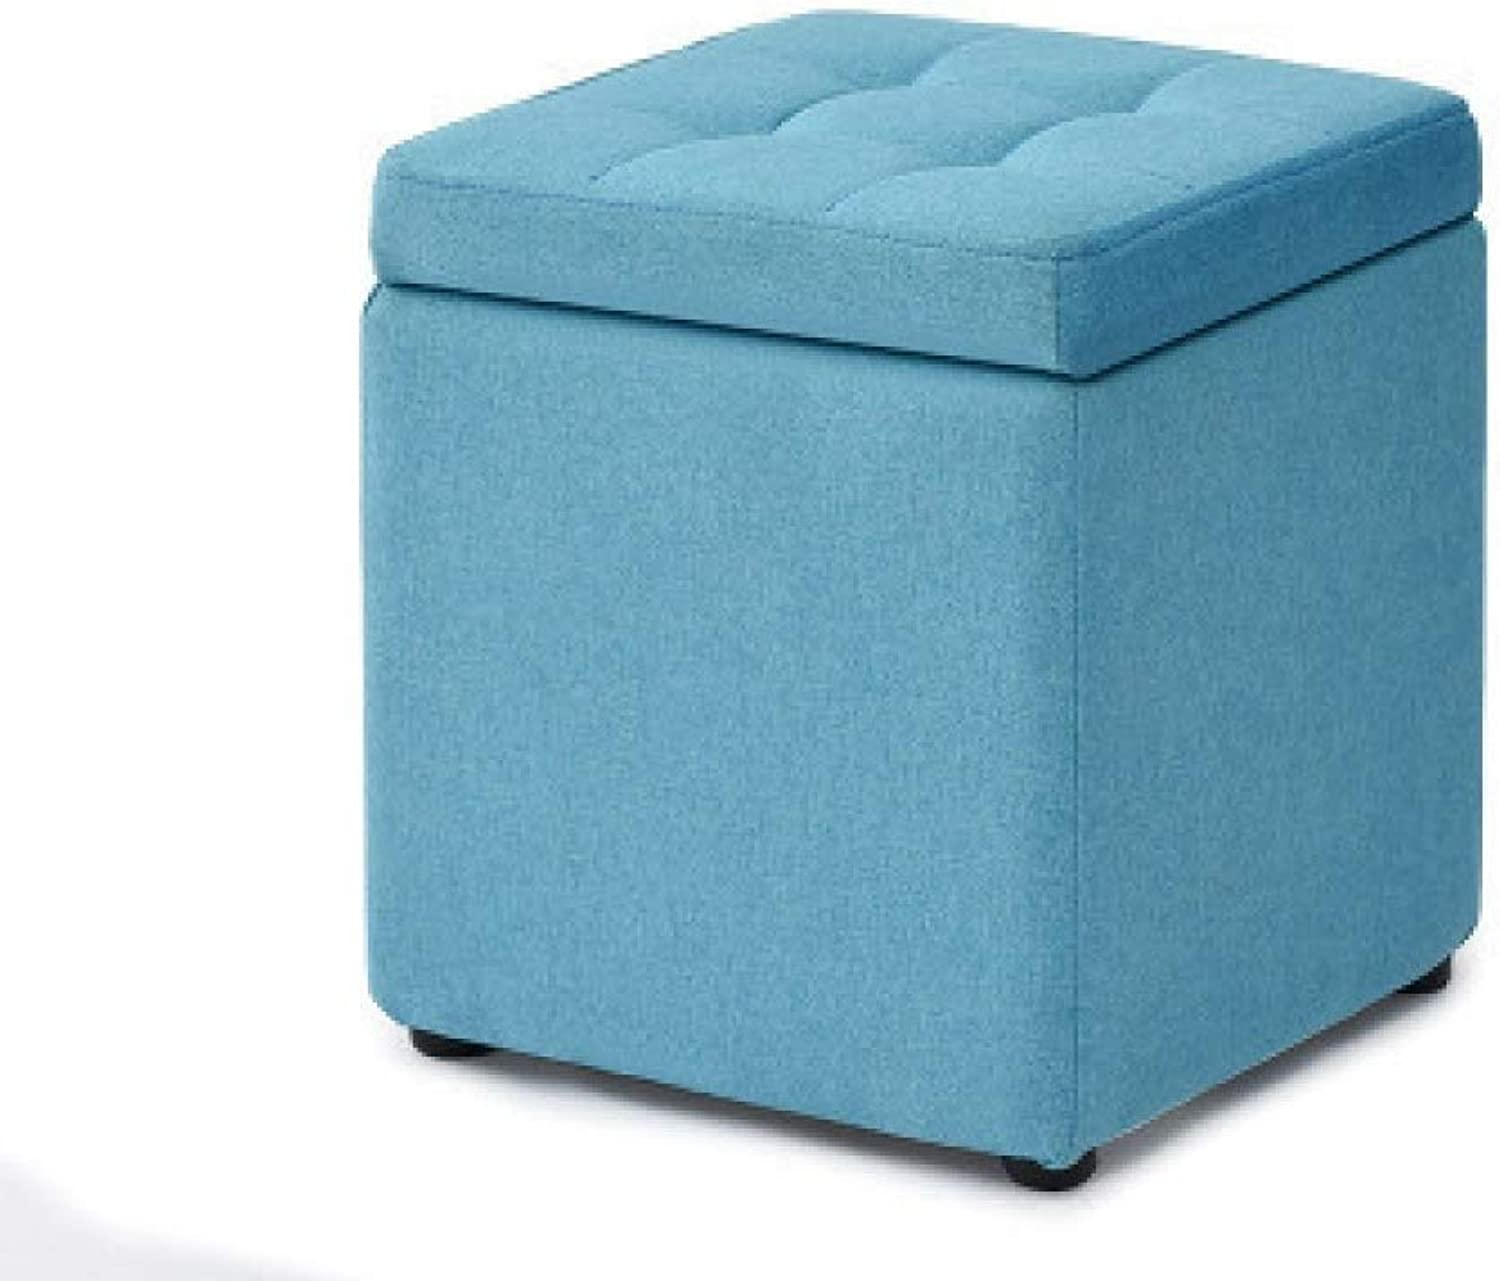 ZhiGe Storage seat,Creative Sofa Stool Storage shoes Storage Stool Low Stool Storage Sofa Storage